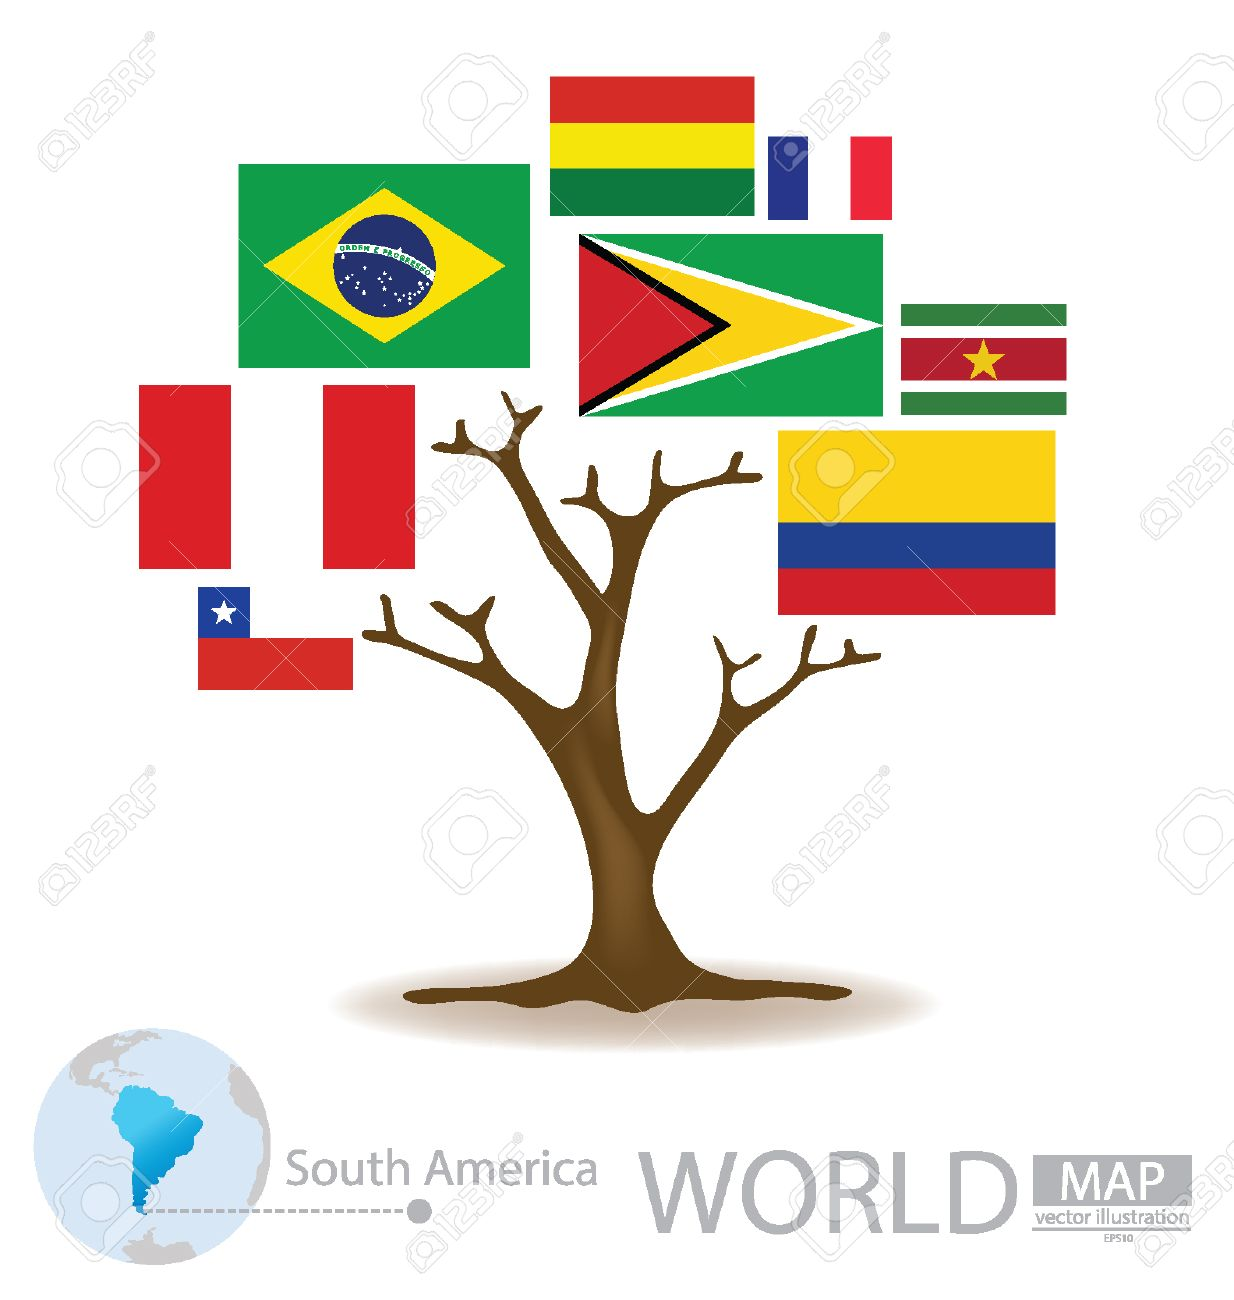 Tree Design Countries In South America Flag World Map Vector - South america map and flags